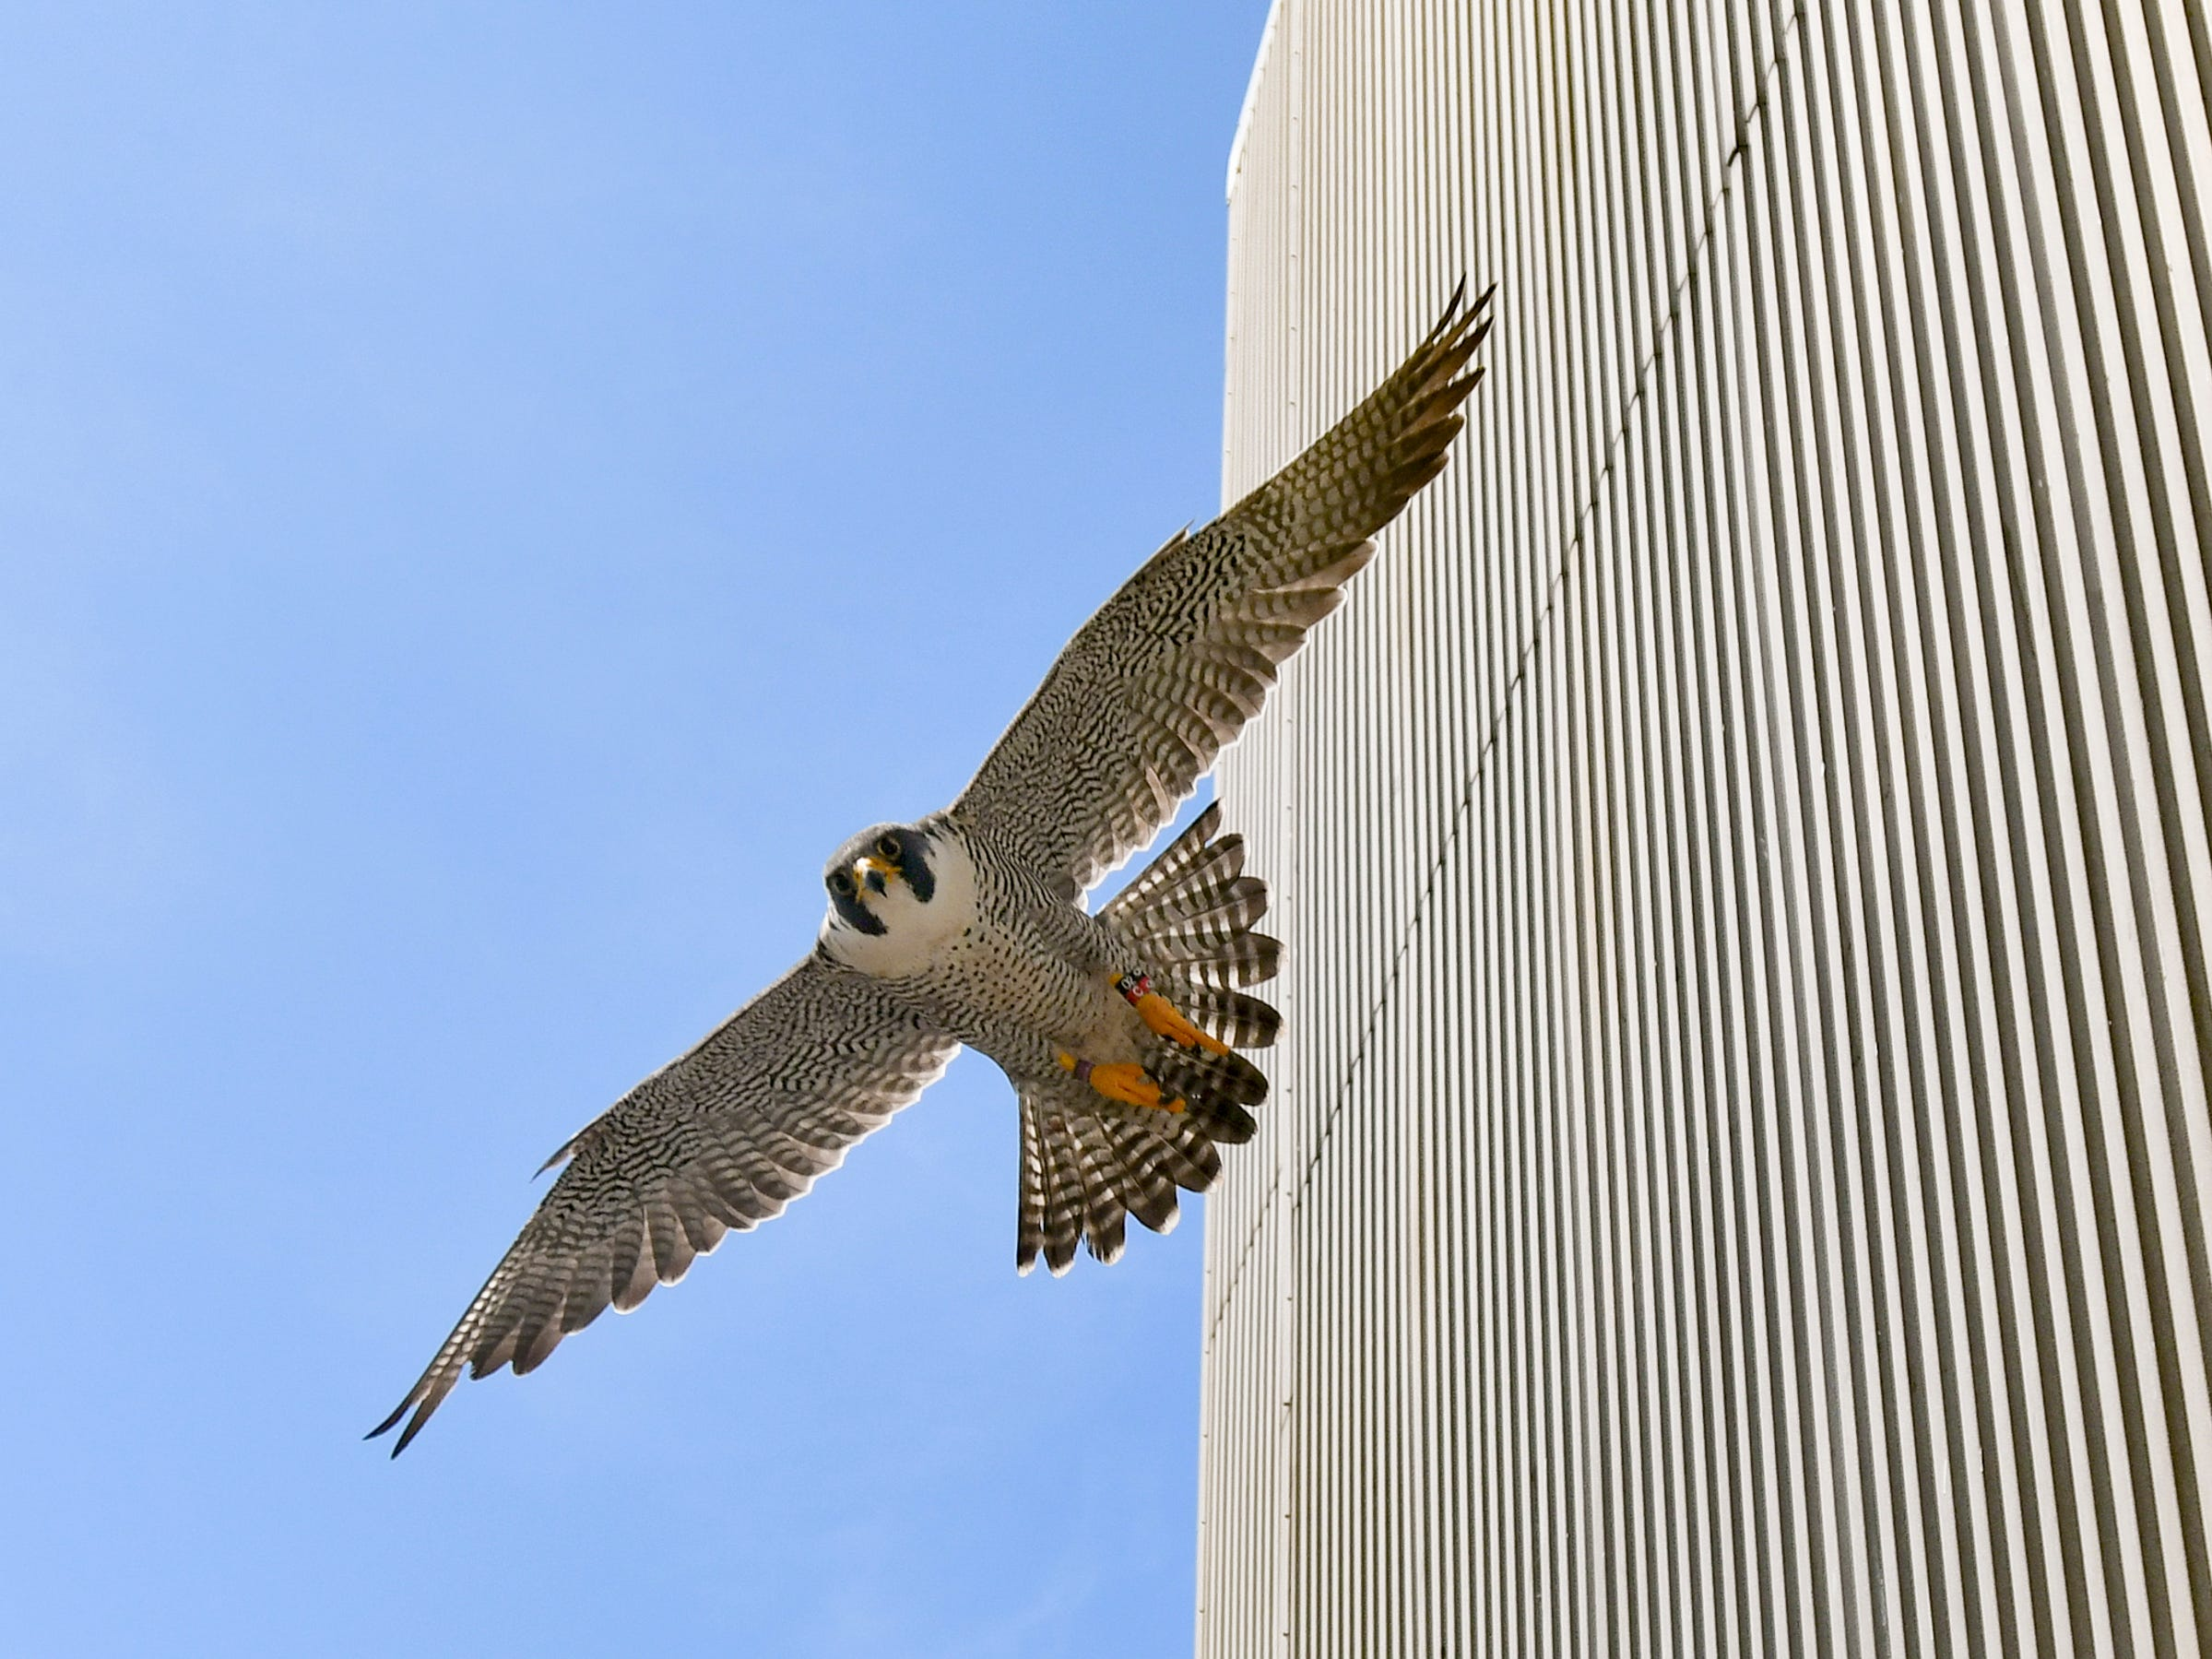 Tornado, an adult male peregrine falcon swoops low protecting its nest, Tuesday, June 26, 2018, near the 10th floor of the Lansing Board of Water & Light's Eckert Power Station in REO Town.  Veterinarians from Potter Park Zoo took its baby chick from the nesting box for a complete physical exam. DNR biologists tagged the bird to help track migration patterns. Peregrine falcons are endangered in Michigan.